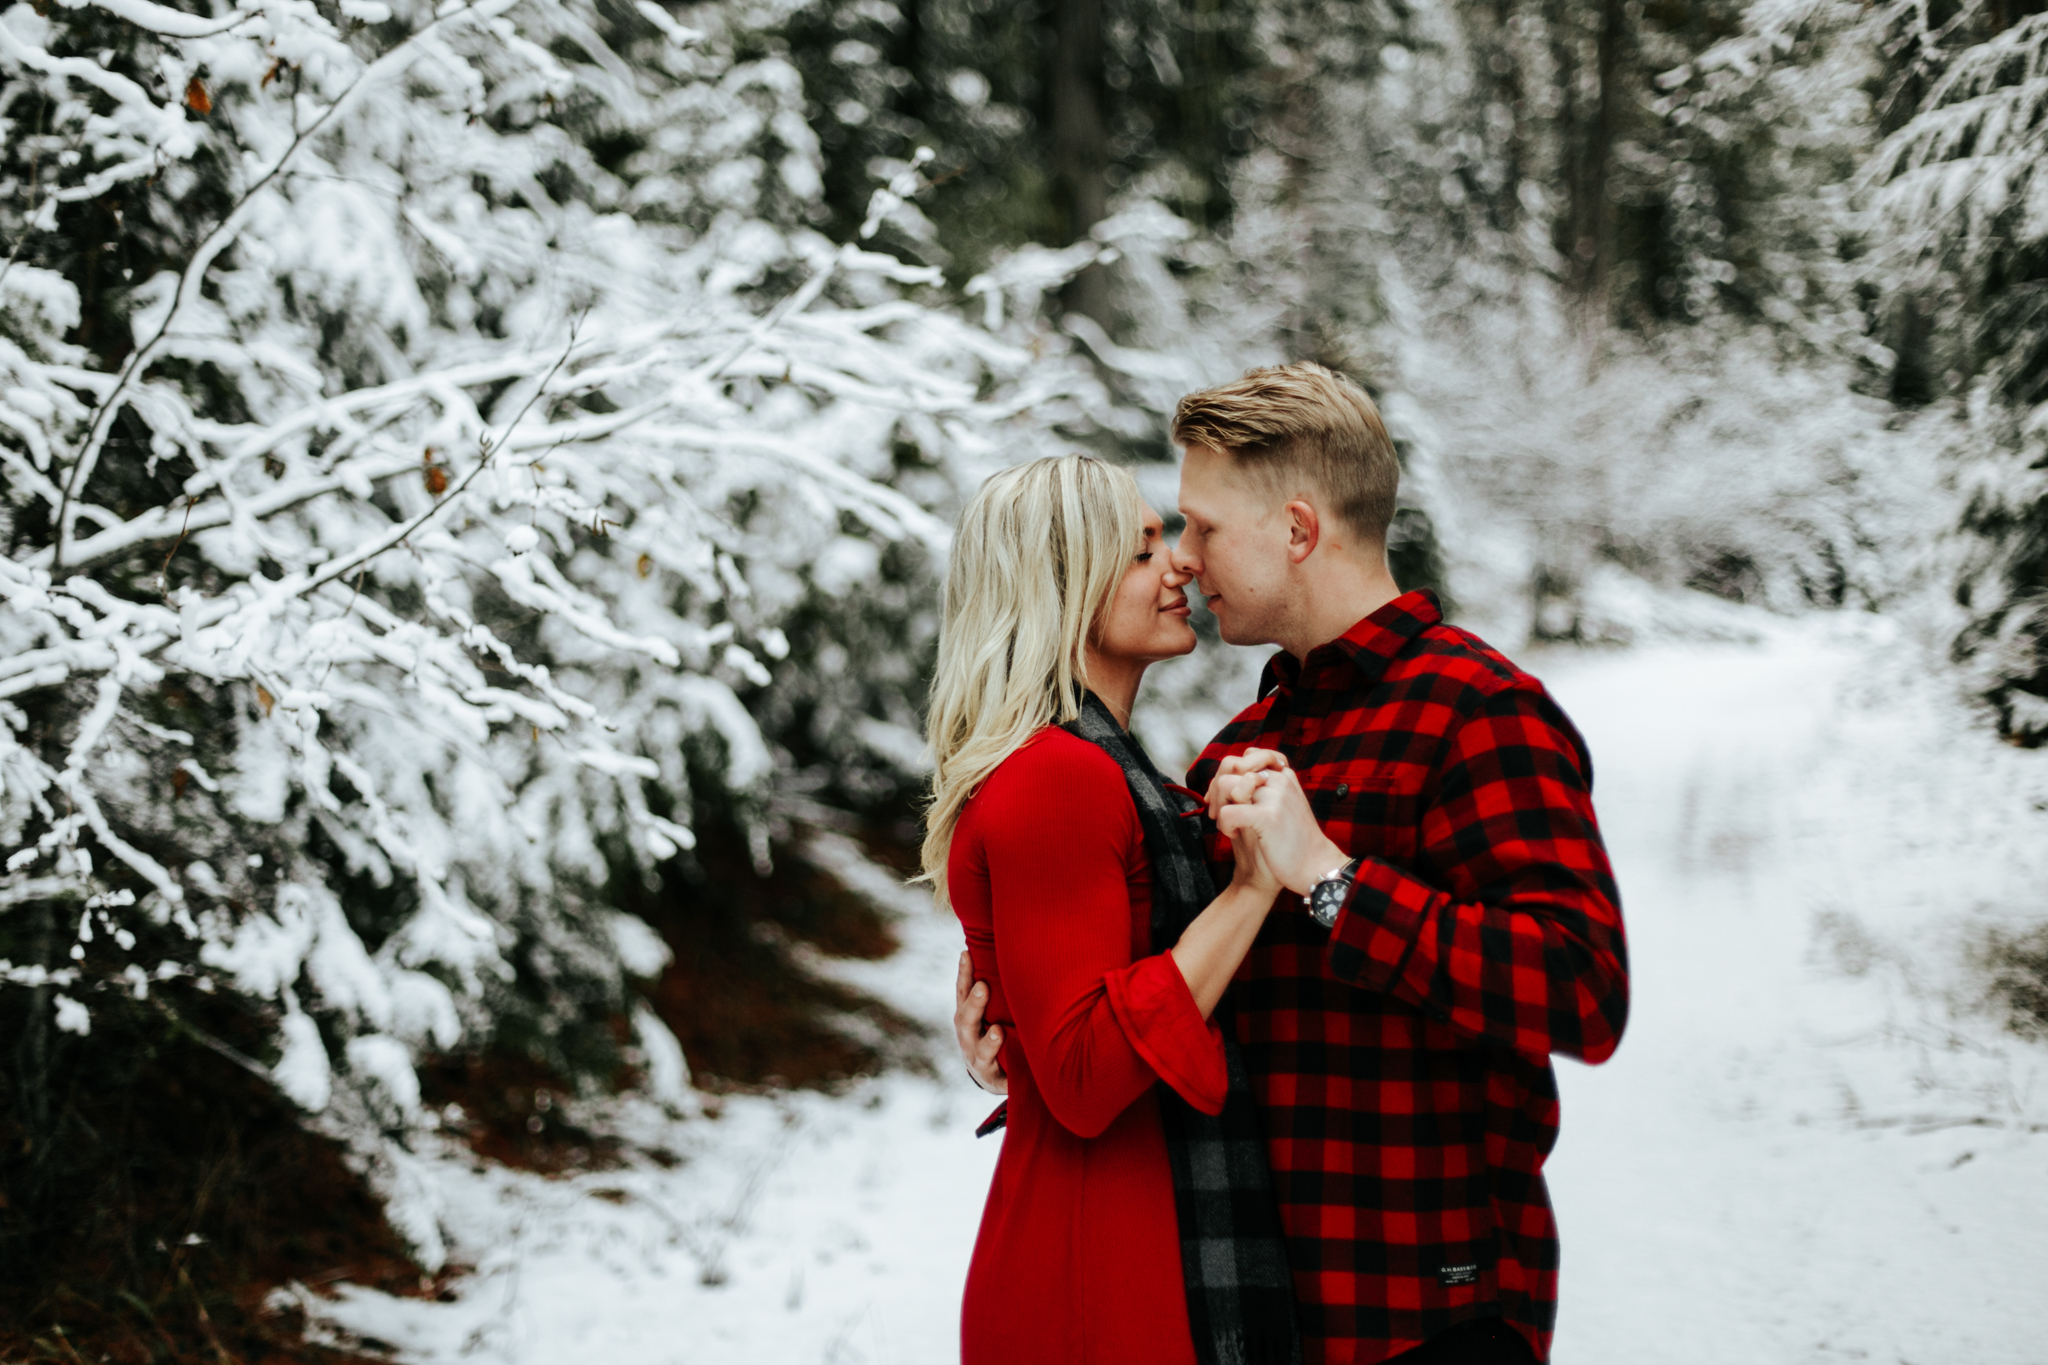 love-and-be-loved-photography-mountain-engagement-ashlyn-rob-perfect-fit-4-u-photo-image-picture-53.jpg